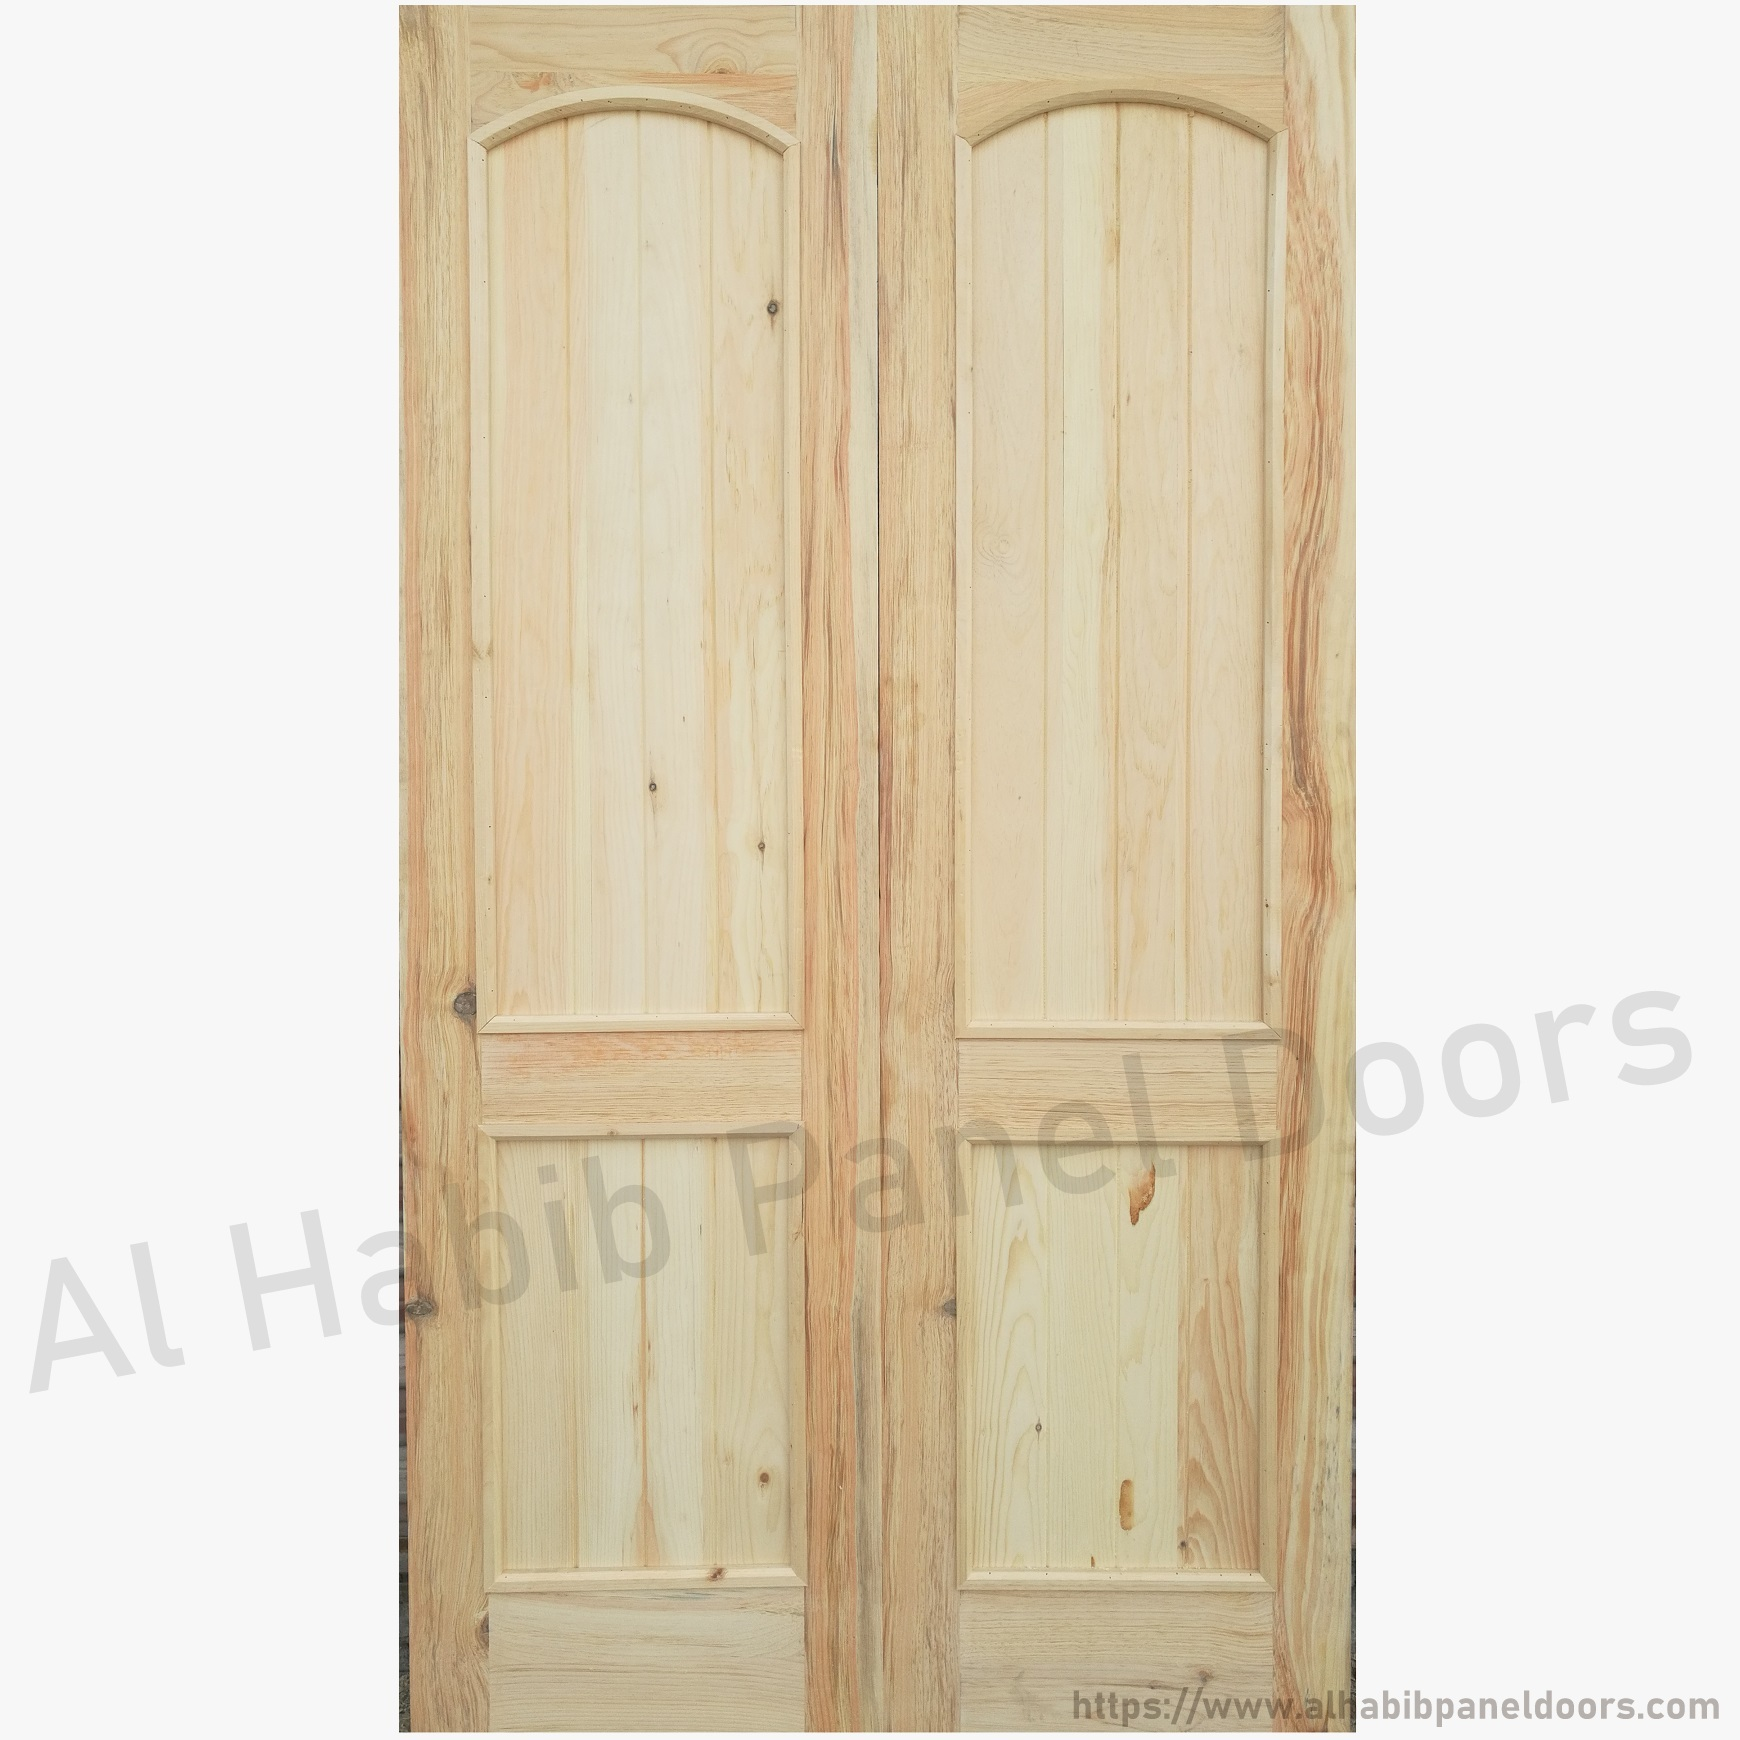 Main doors doors al habib panel doors for Door design latest 2015